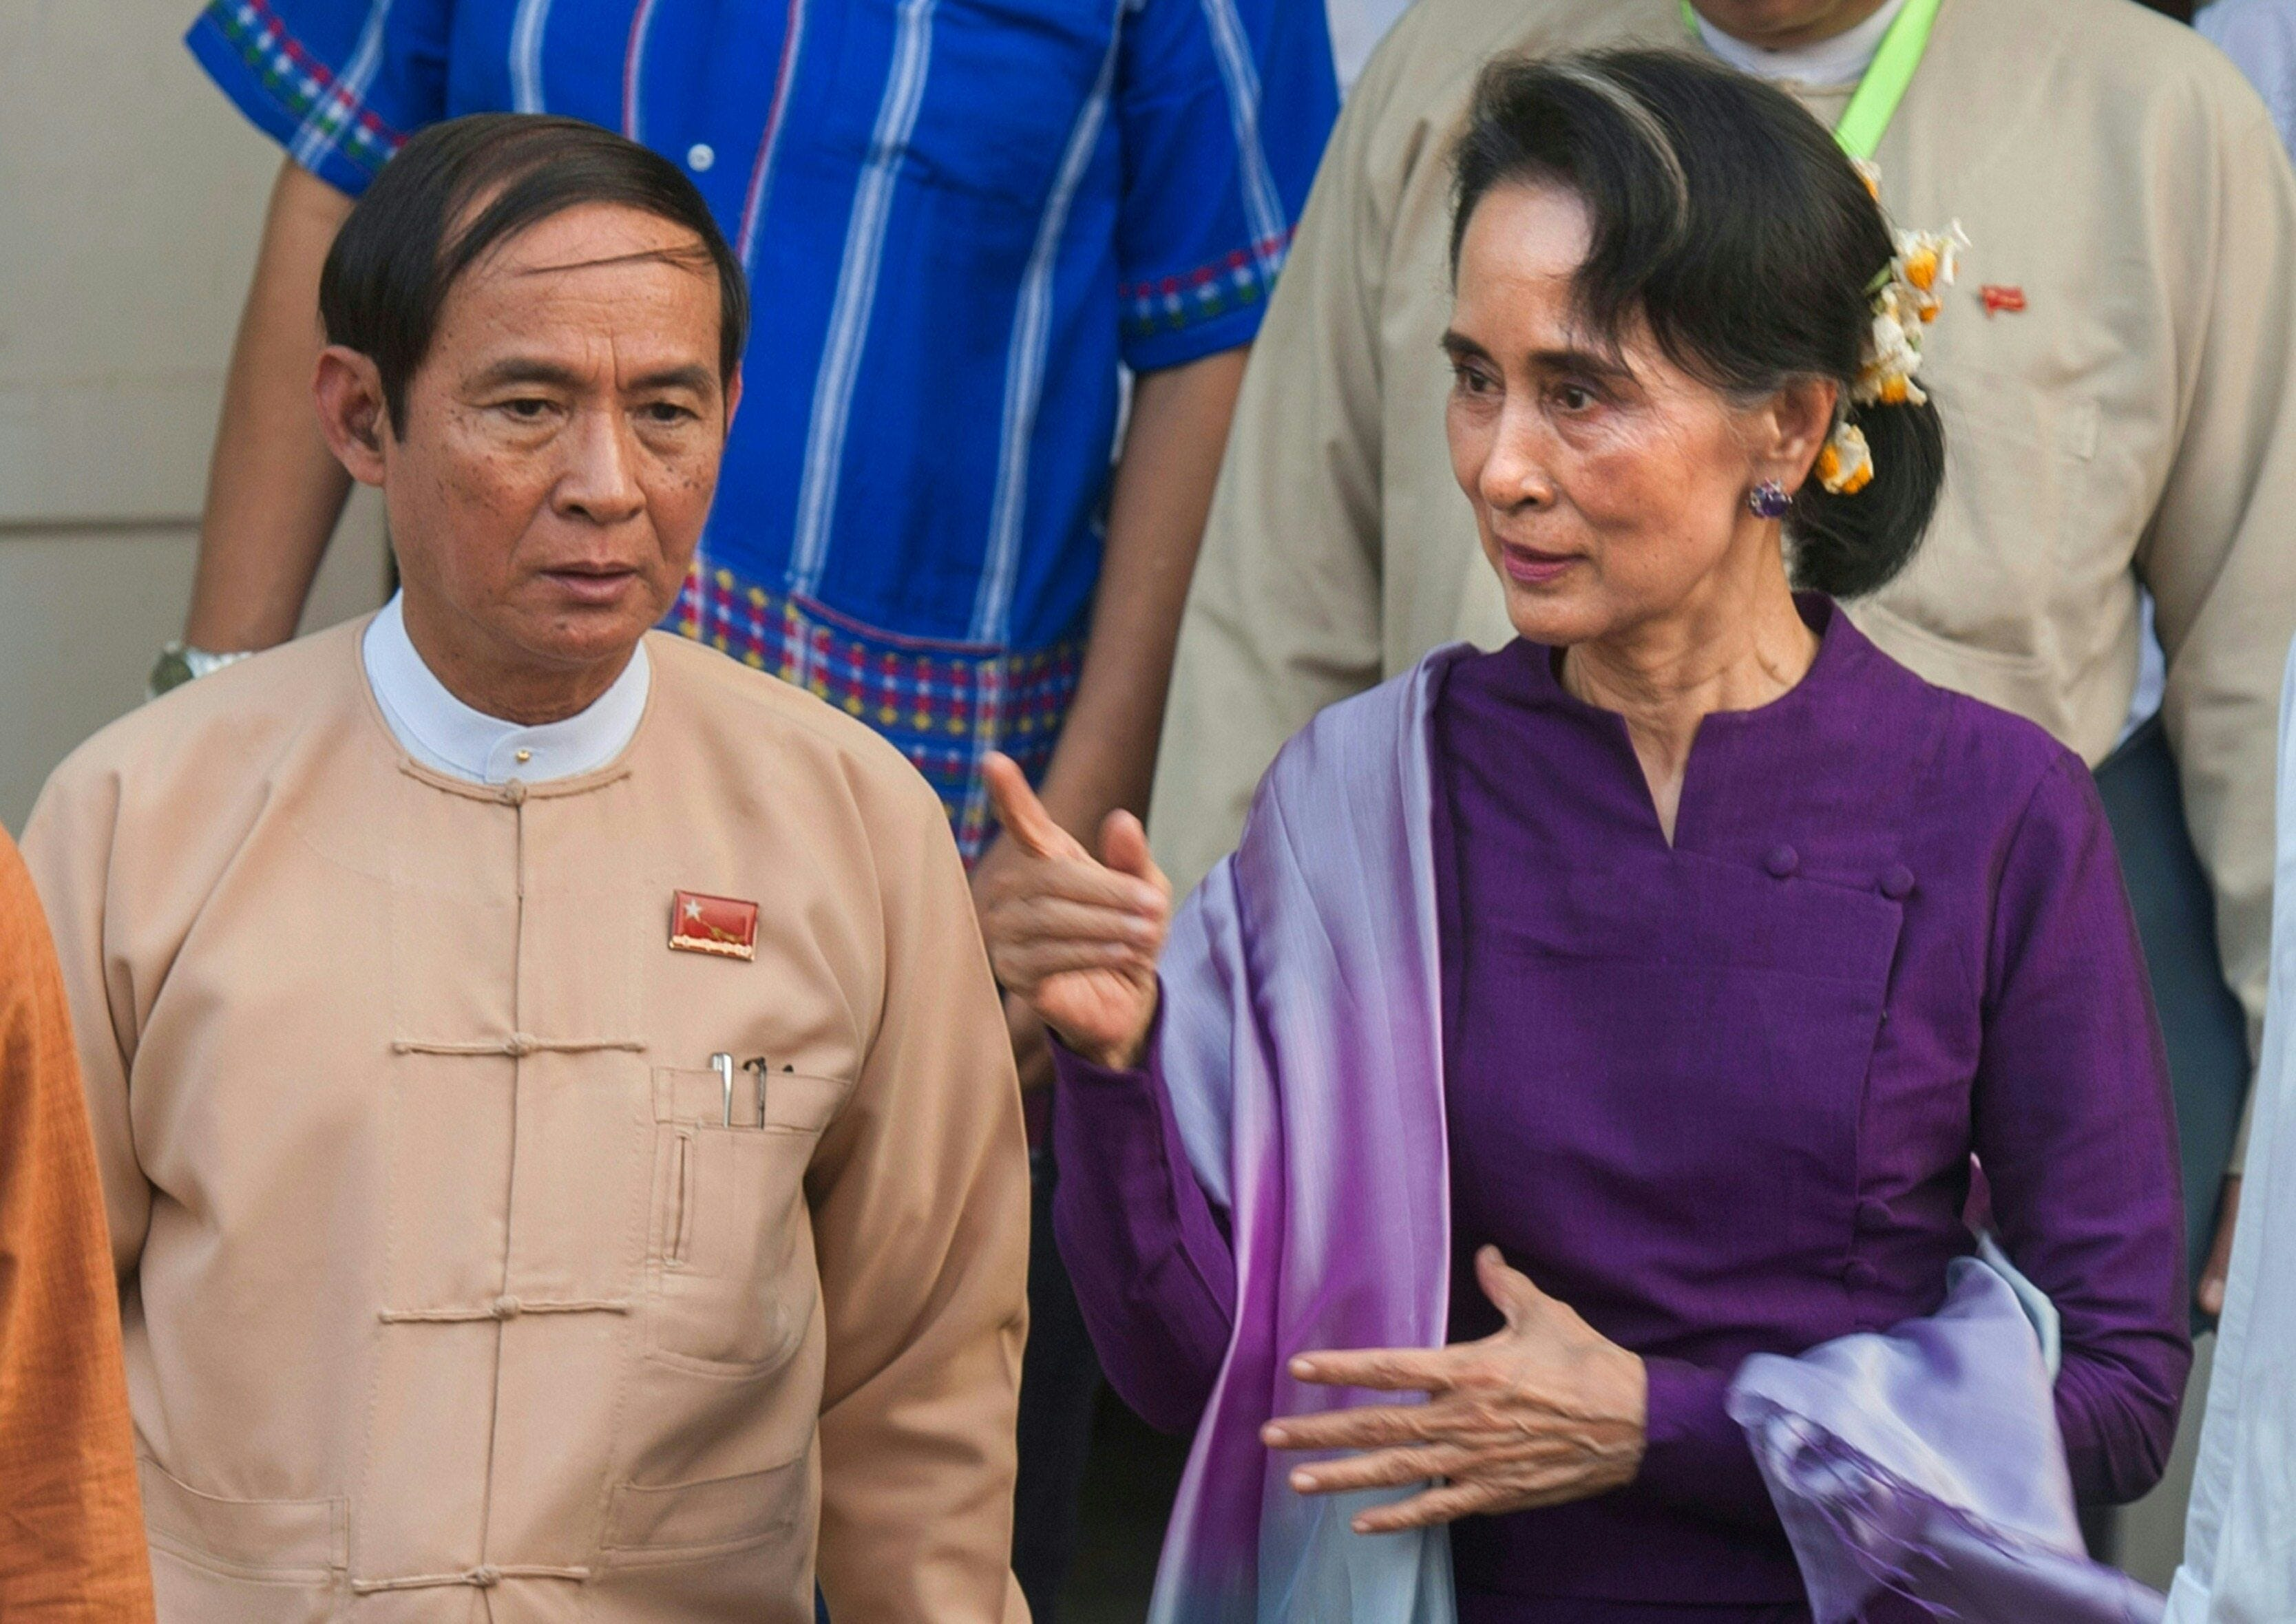 Myanmar military says it is seizing country; Aung San Suu Kyi detained, reports say